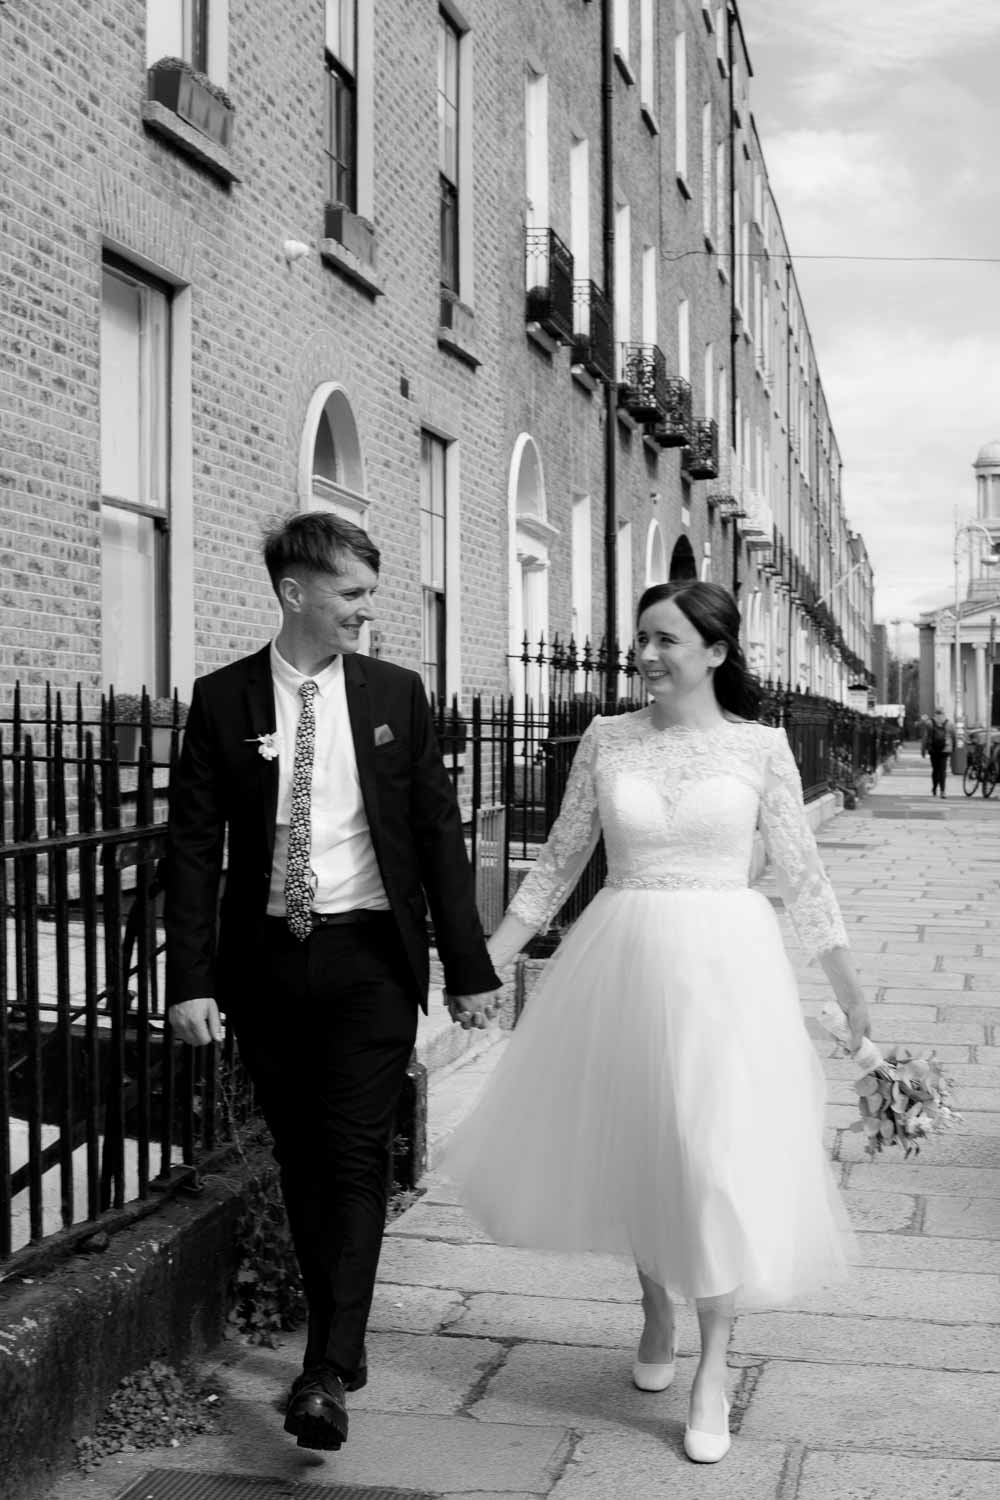 Registry Office Photography of the bride and groom walking through Georgian Dublin following their wedding ceremony